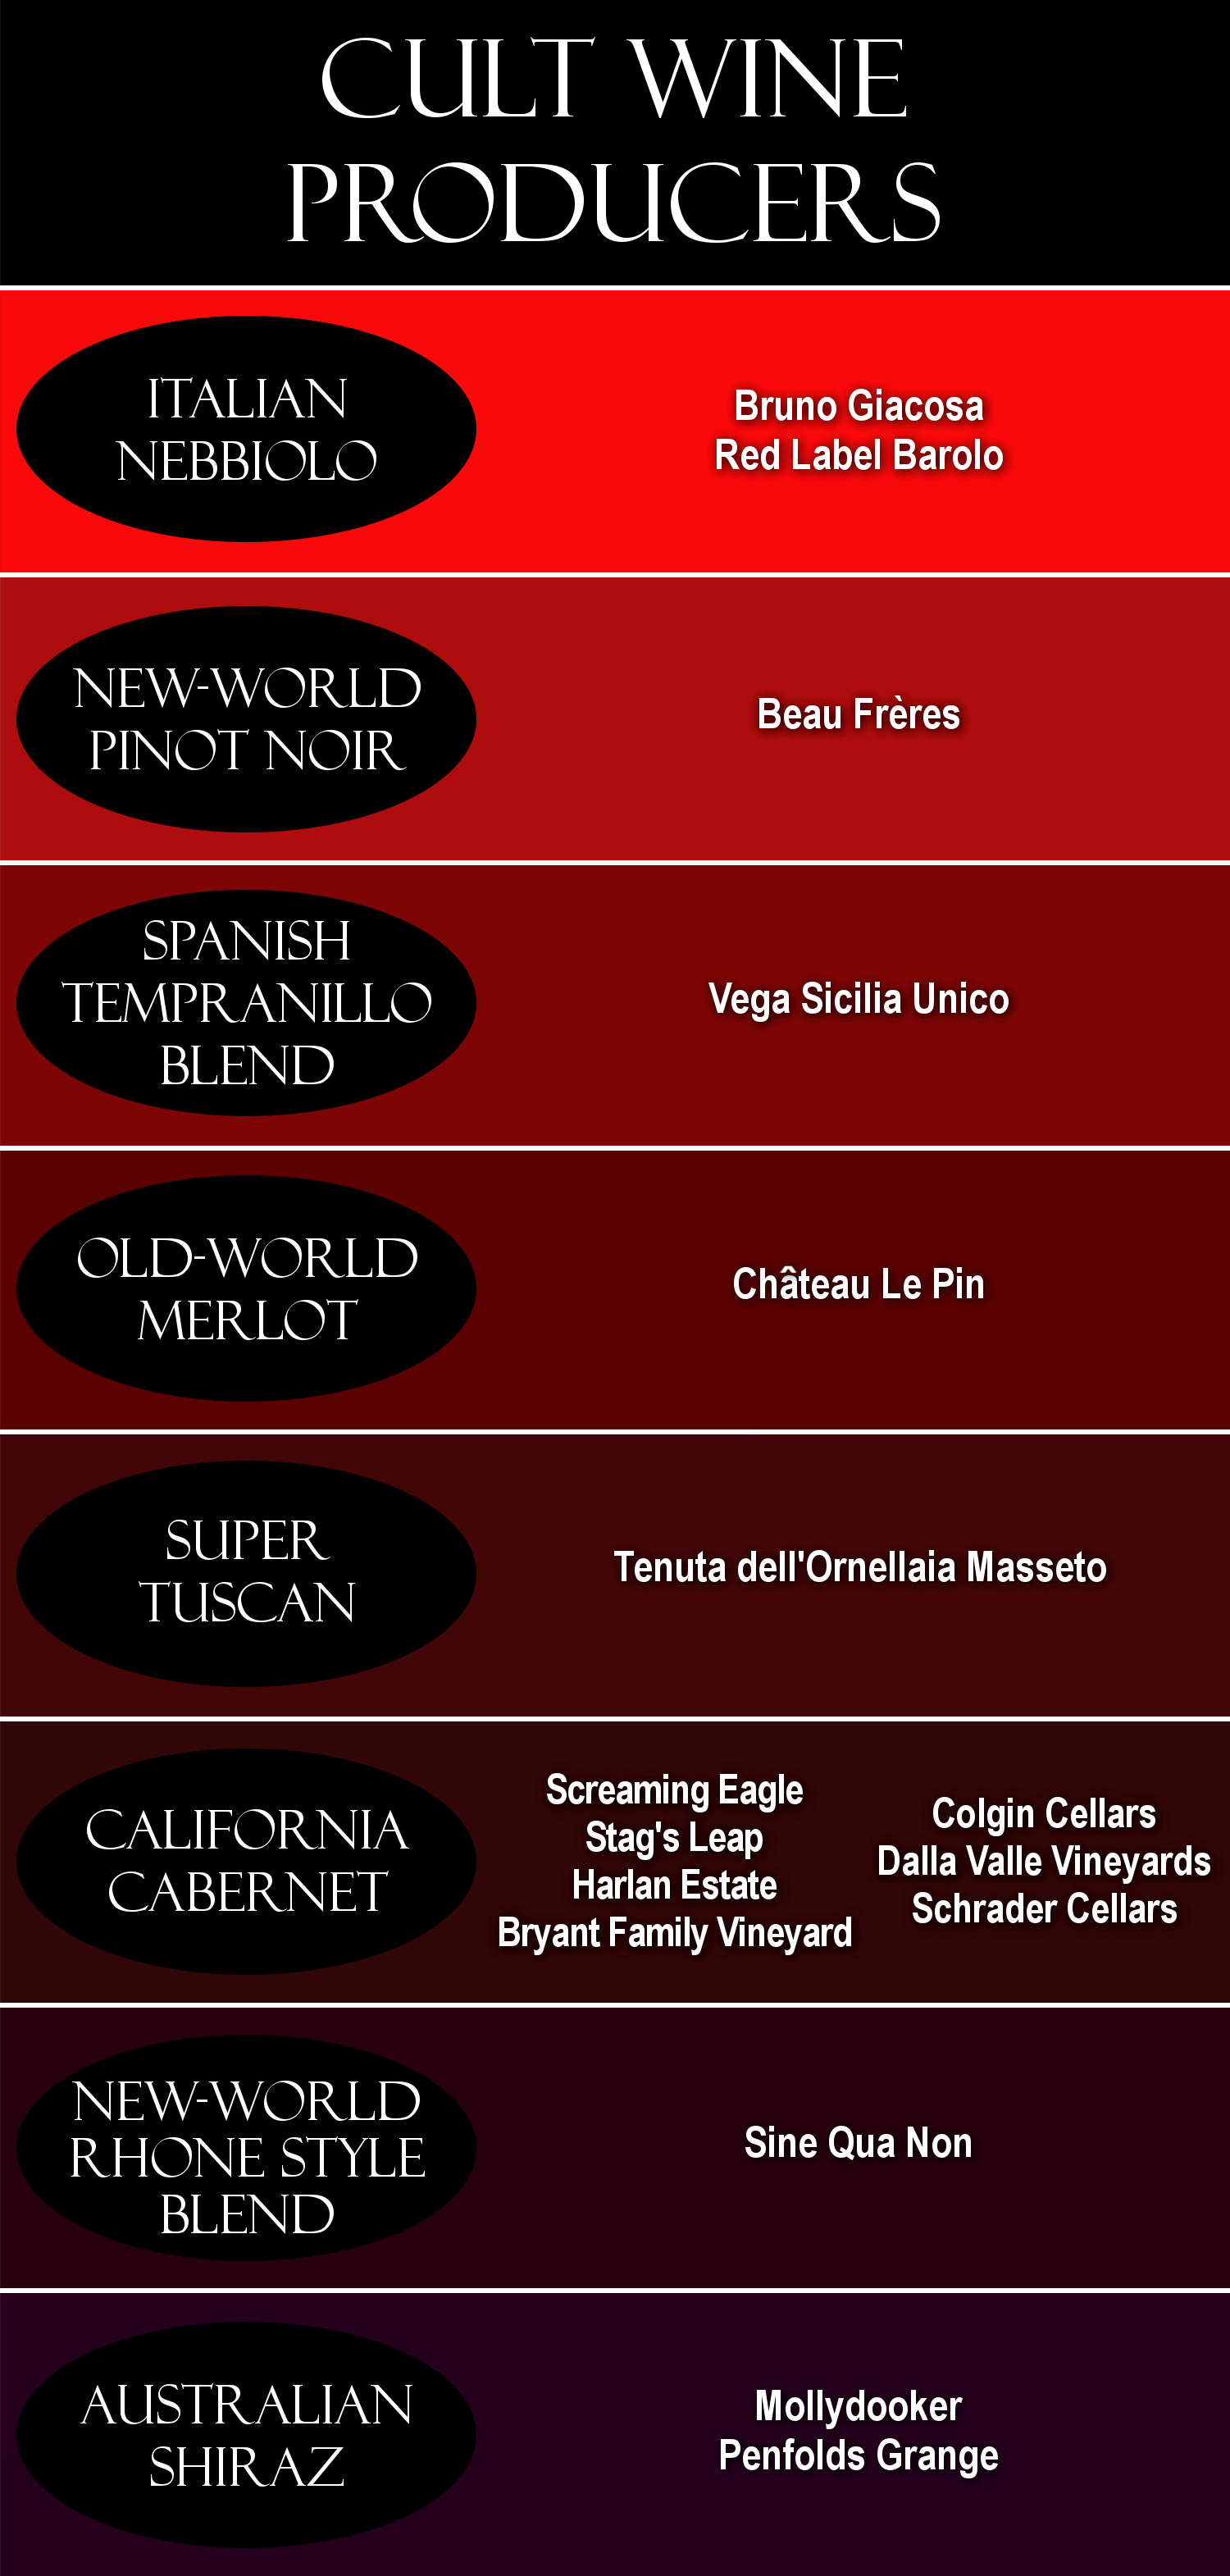 Cult wines from various wine regions of the world.